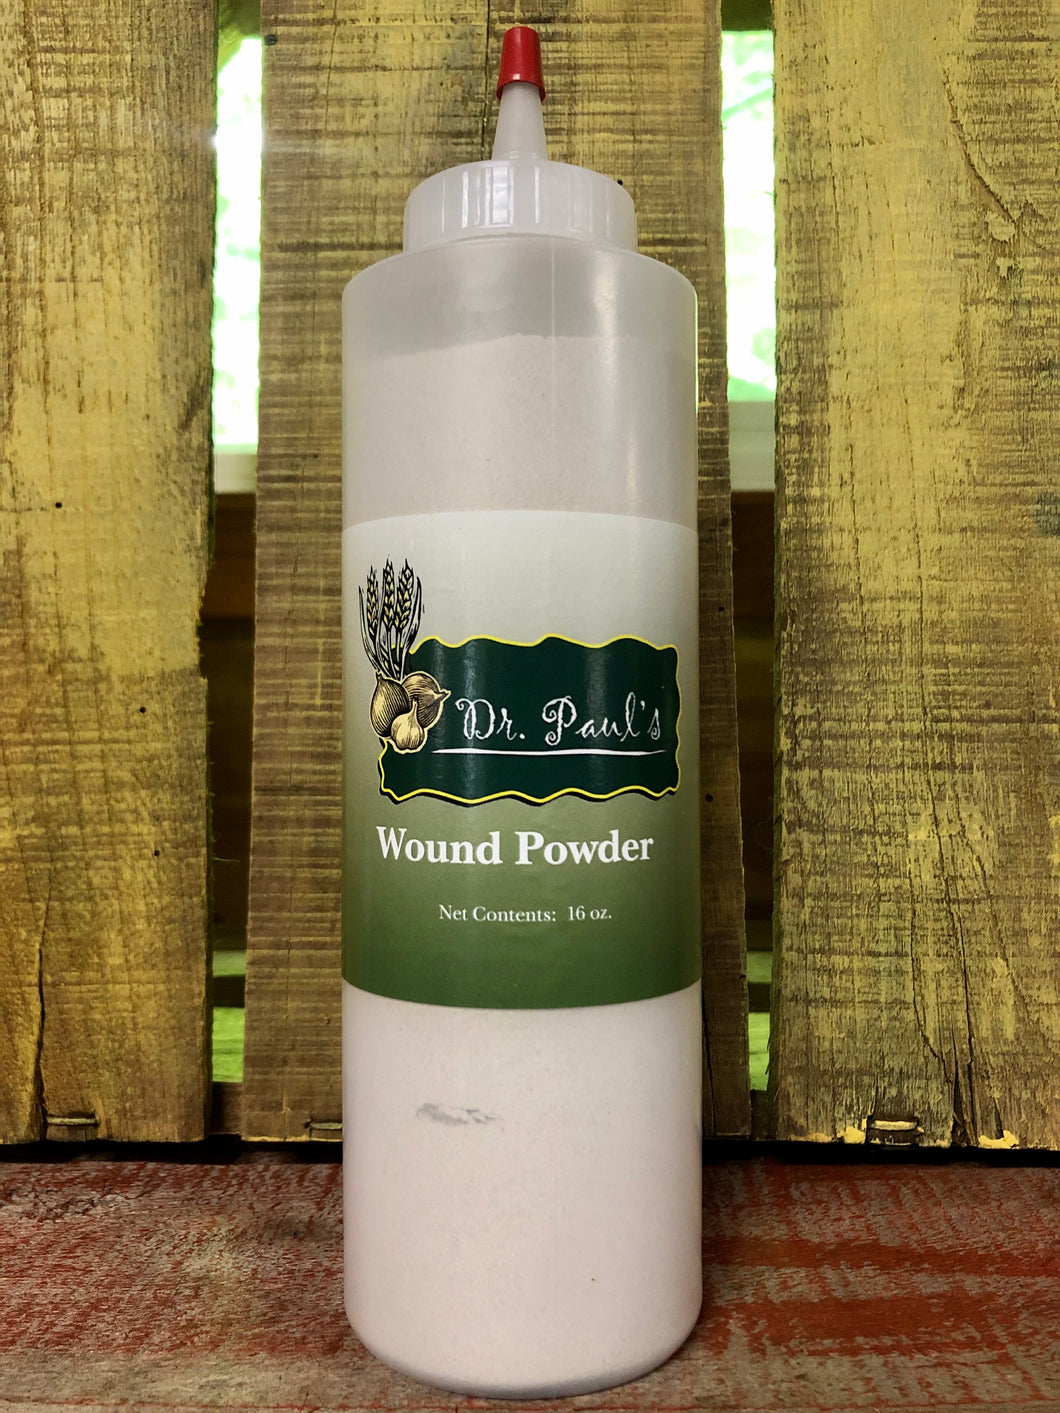 Wound Powder